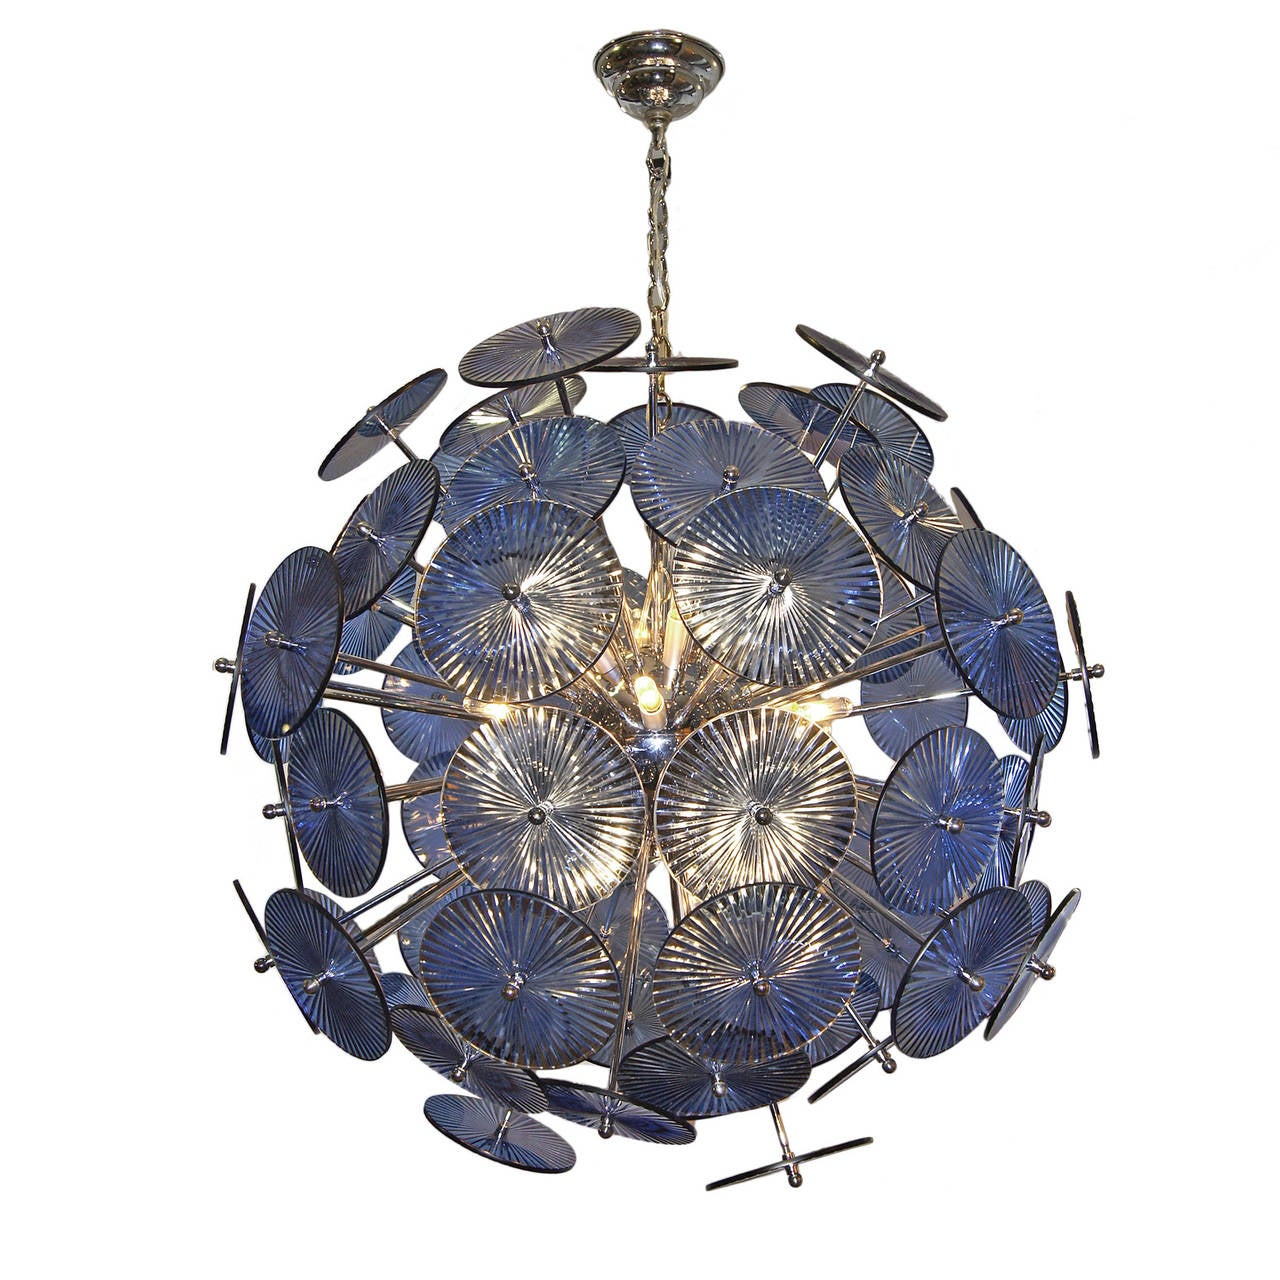 A circa 1960's Italian Blue glass and chrome sputnik chandelier, blue glass with etched details on glass.